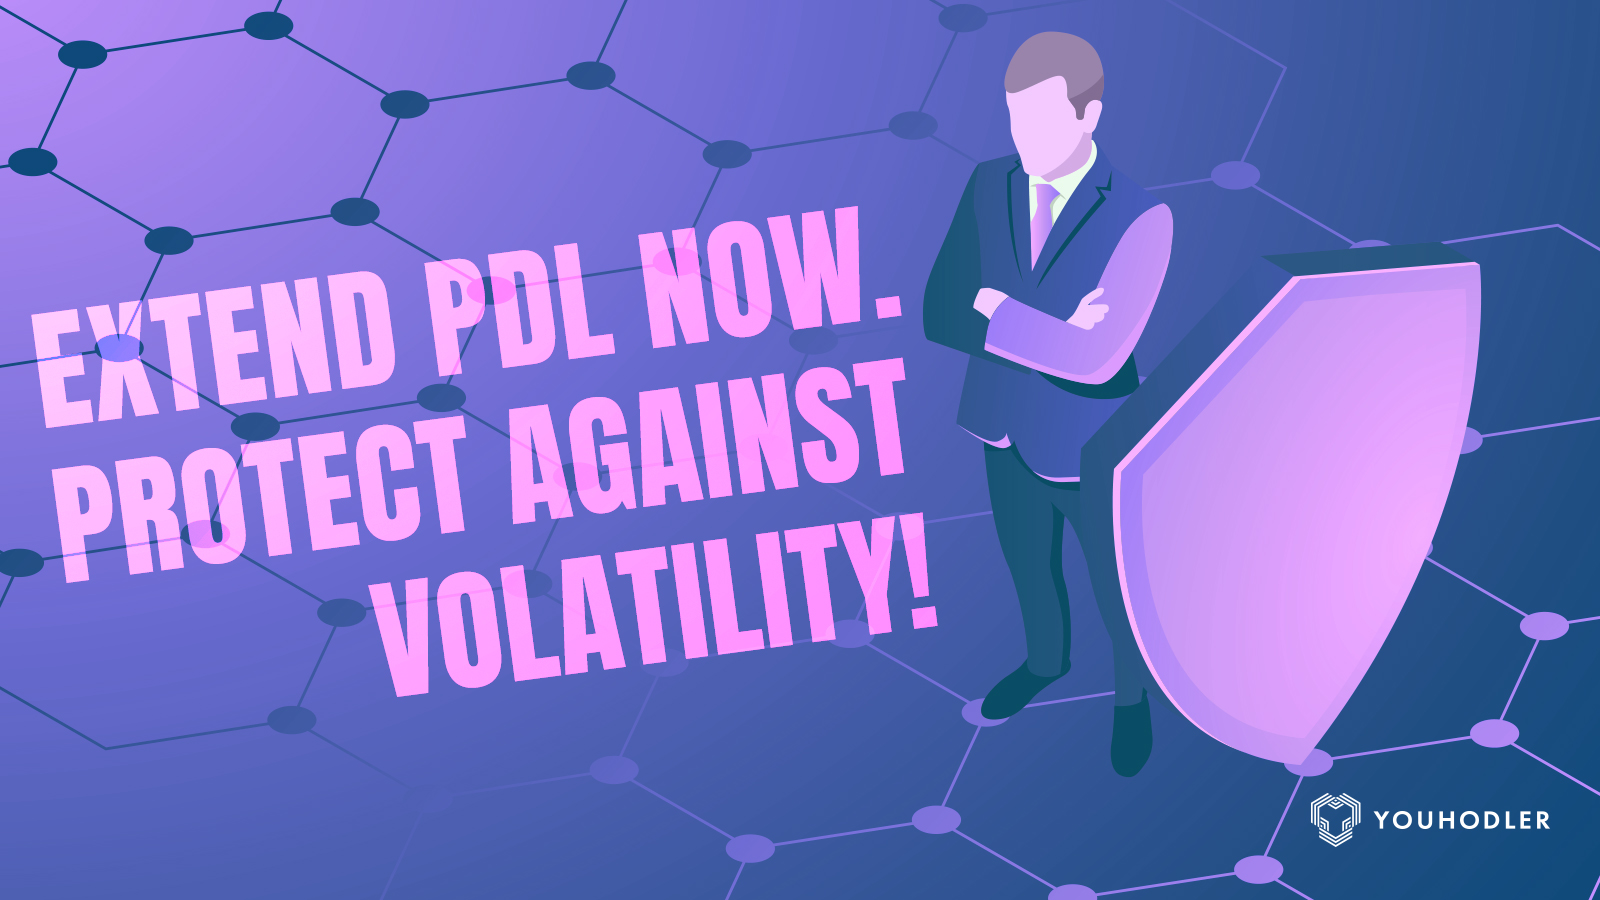 YouHodler's new PDL Extend feature improves the control its users have during market volatility.